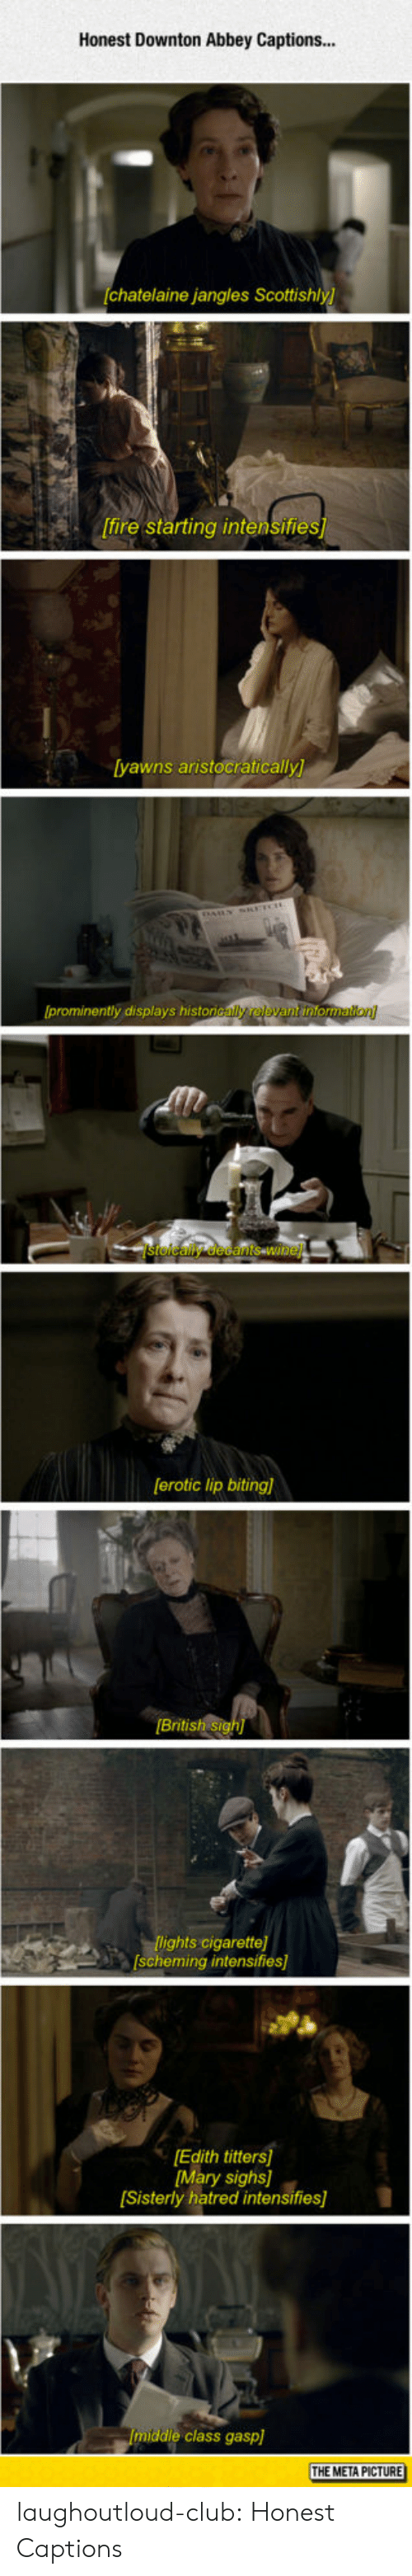 Club, Fire, and Tumblr: Honest Downton Abbey Captions...  chatelaine jangles Scottishly)  [fire starting intensifie  yawns aristocratically  prominently displays histon  [erotic lip biting)  British si  CARlights cigarette]  scheming intensifies]  Edith titters  Mary sighs]  Sisterly hatred intensifies]  middle class gasp]  THE META PICTURE laughoutloud-club:  Honest Captions